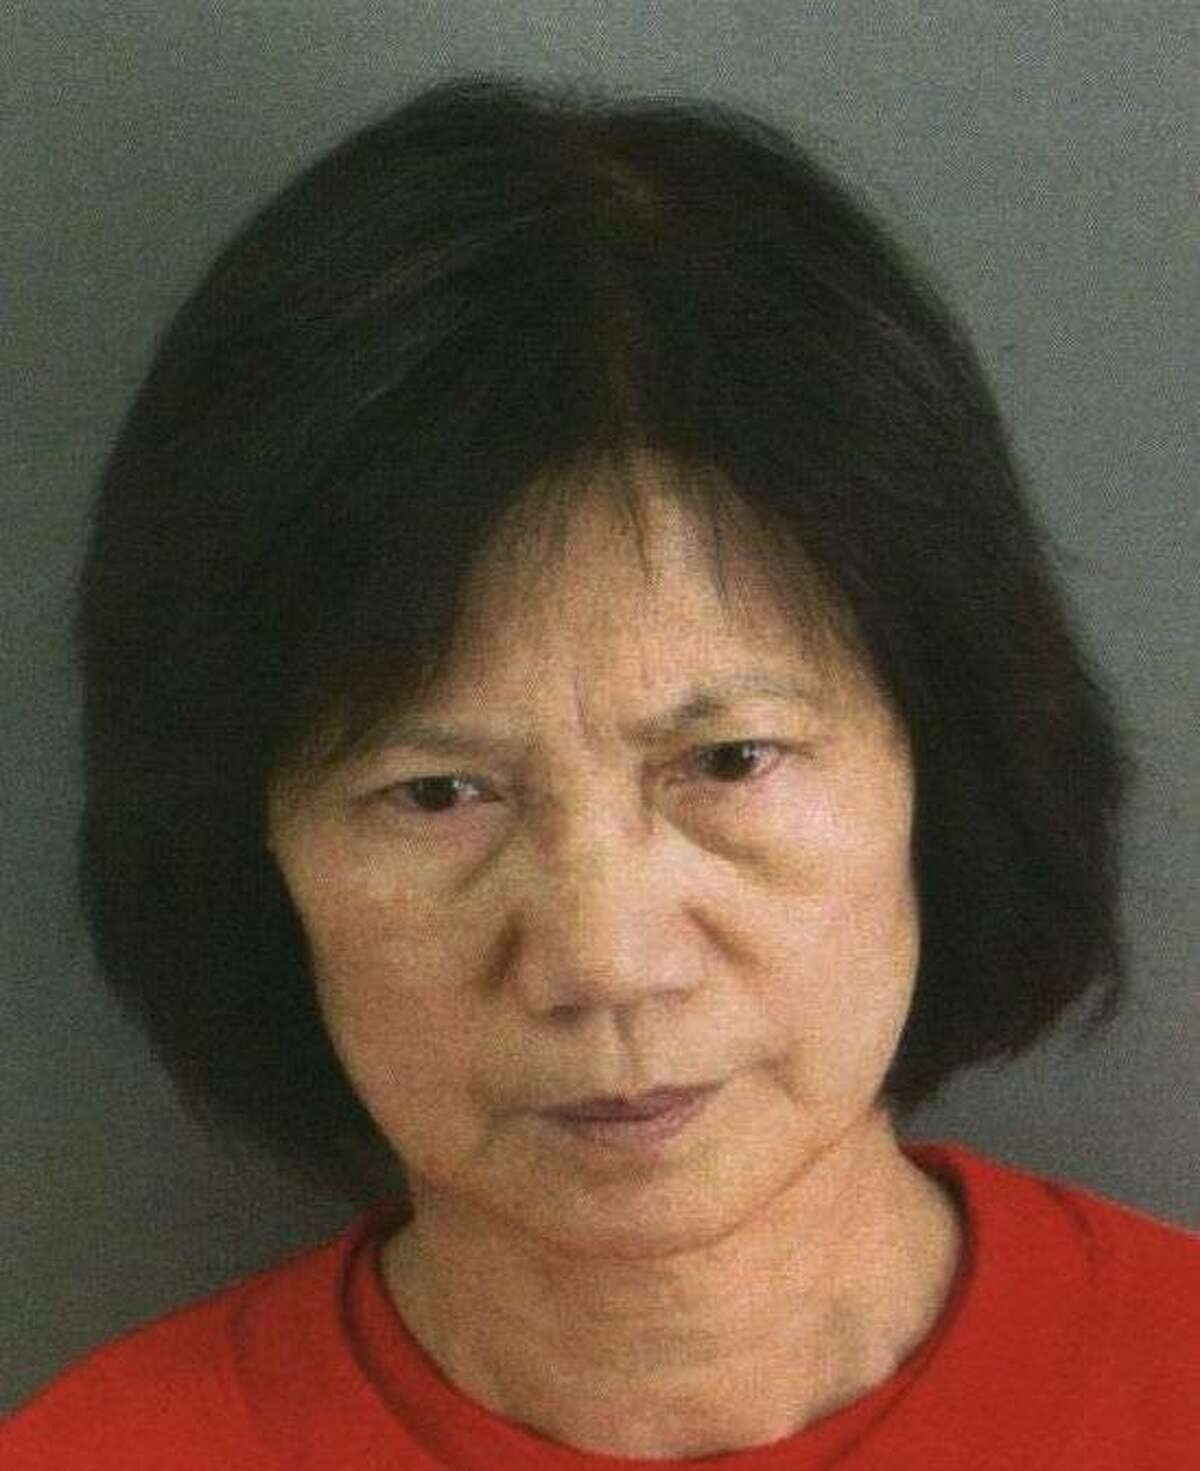 Hannah Yau, along with Maria Dionisio, has been arrested and charged for their alleged involvement in a $2.6 million dollar embezzlement scam.